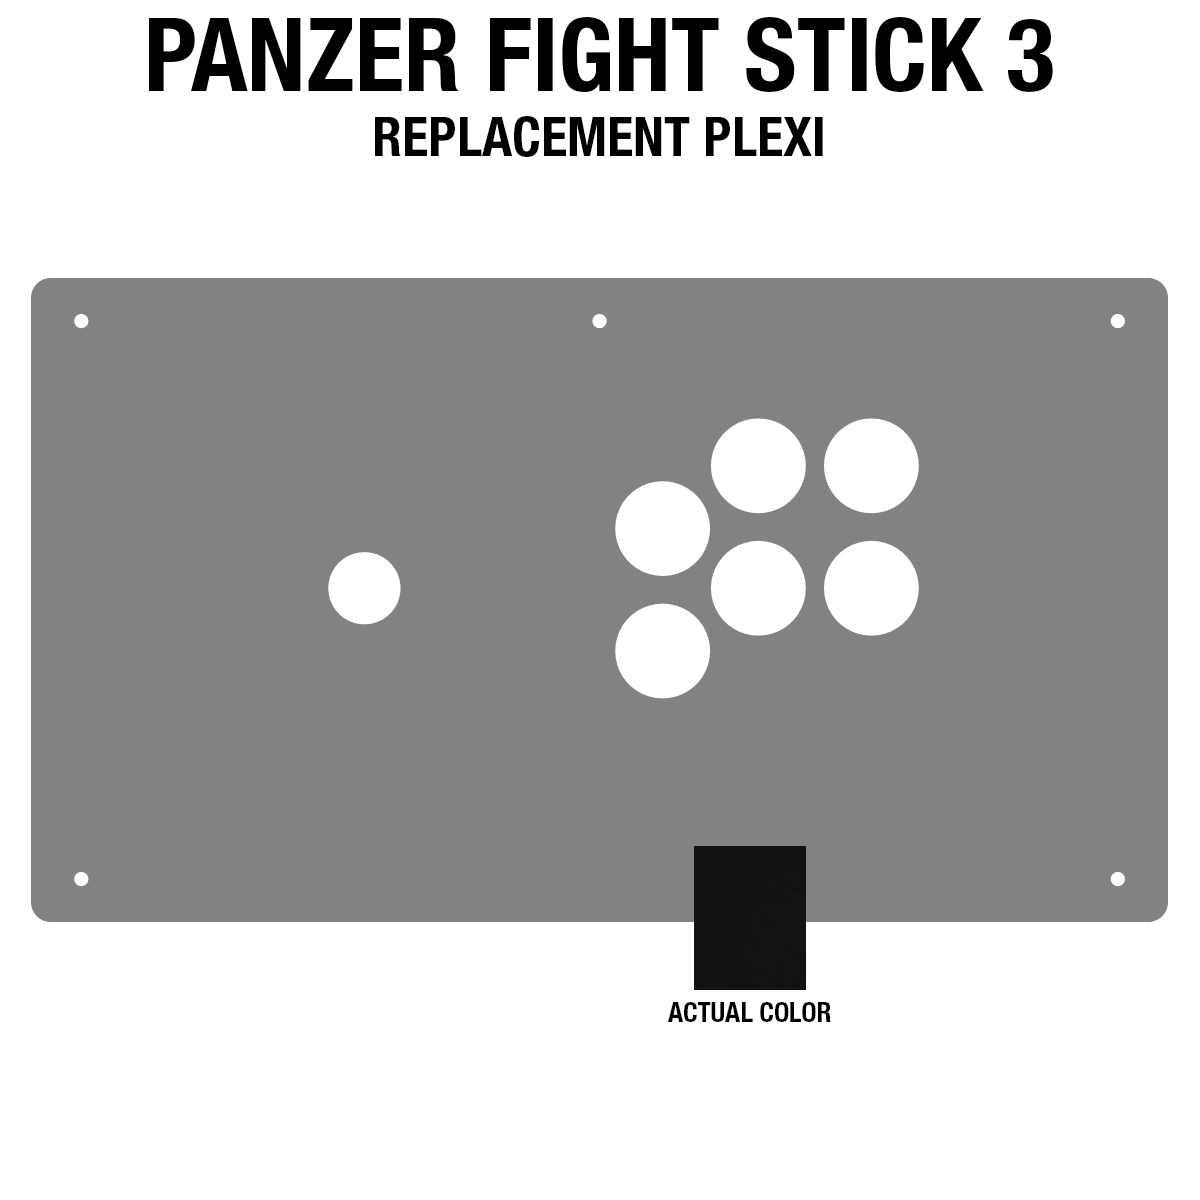 Panzer Fight Stick 3 Plexi - Black Gloss (6 Buttons)